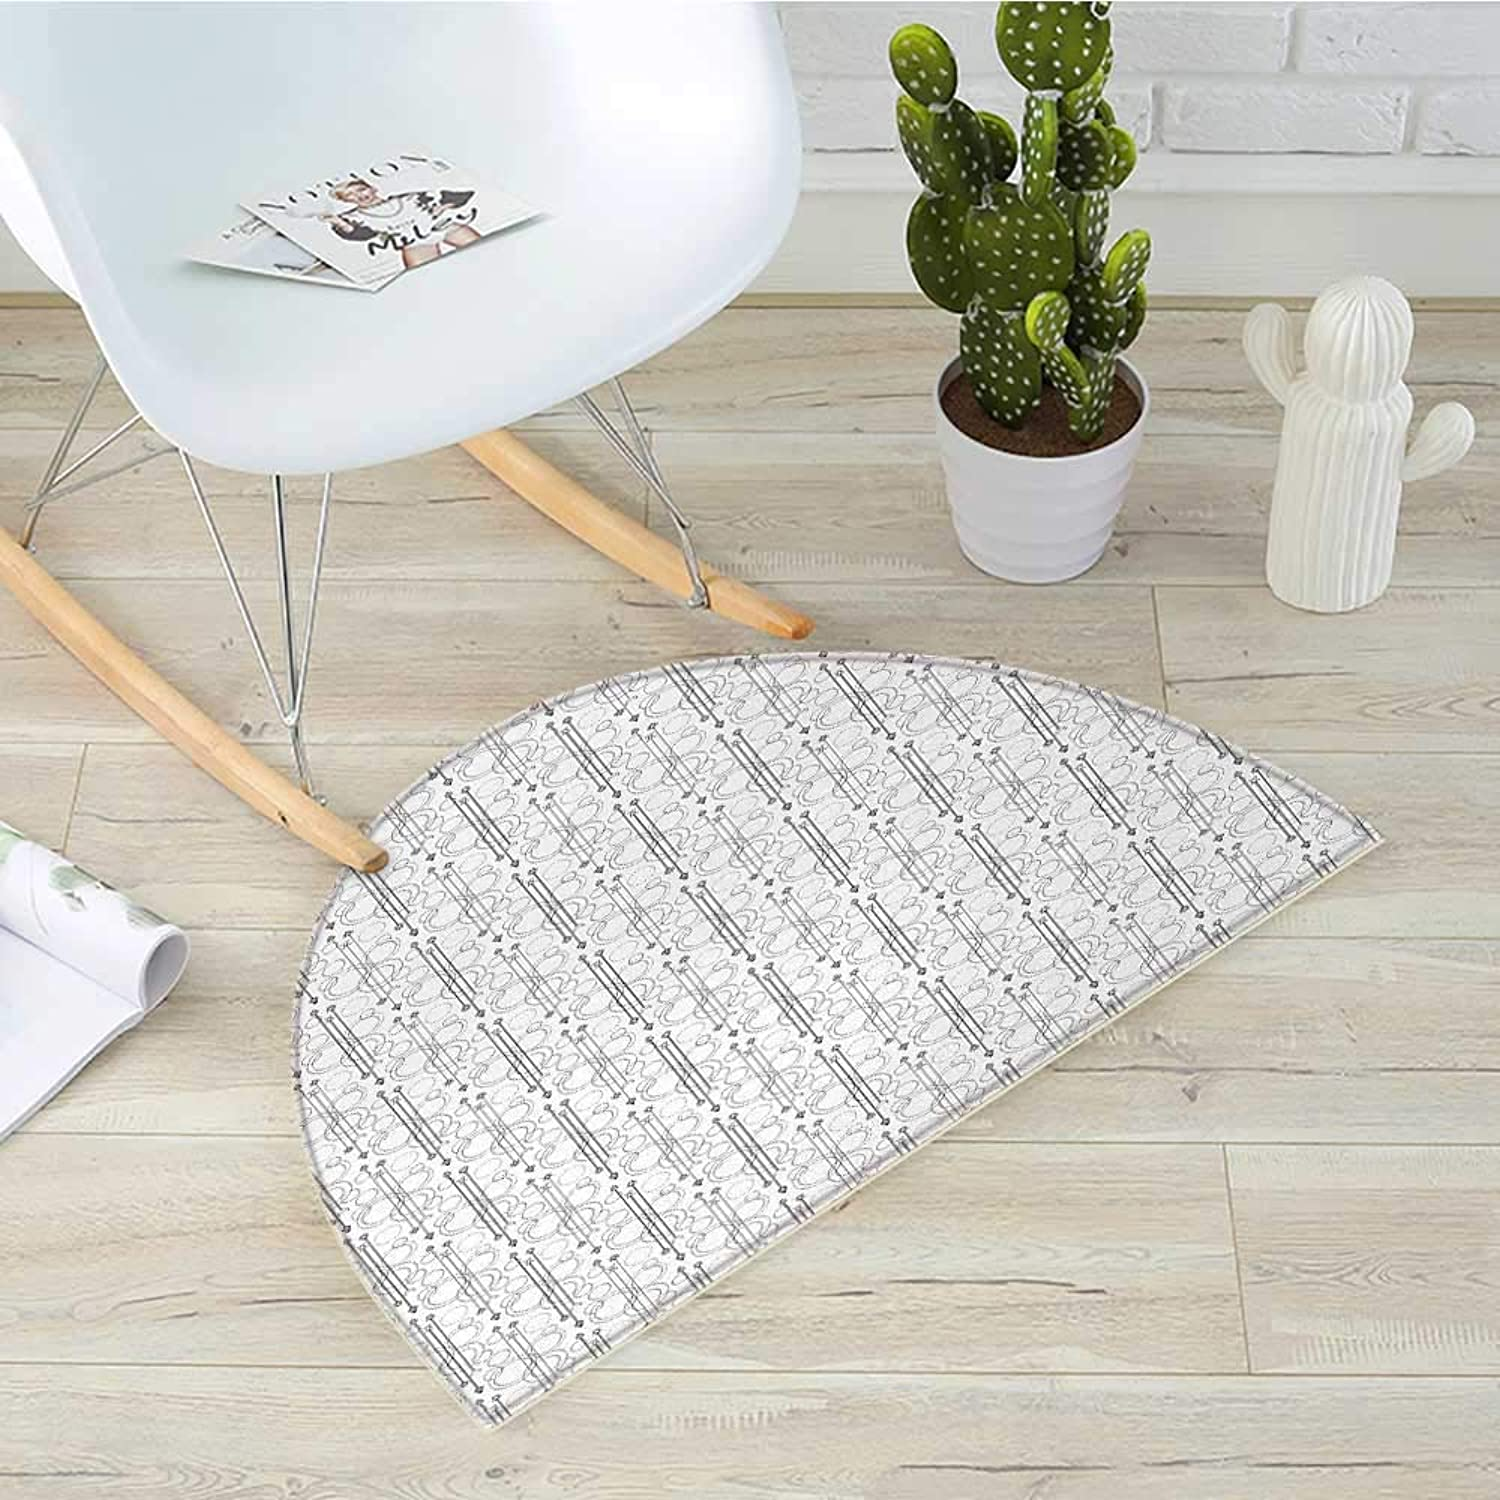 Tattoo Half Round Door mats Black and White Pattern with Contemporary Techno Geometric Shapes Arrows Circles Bathroom Mat H 31.5  xD 47.2  Black White